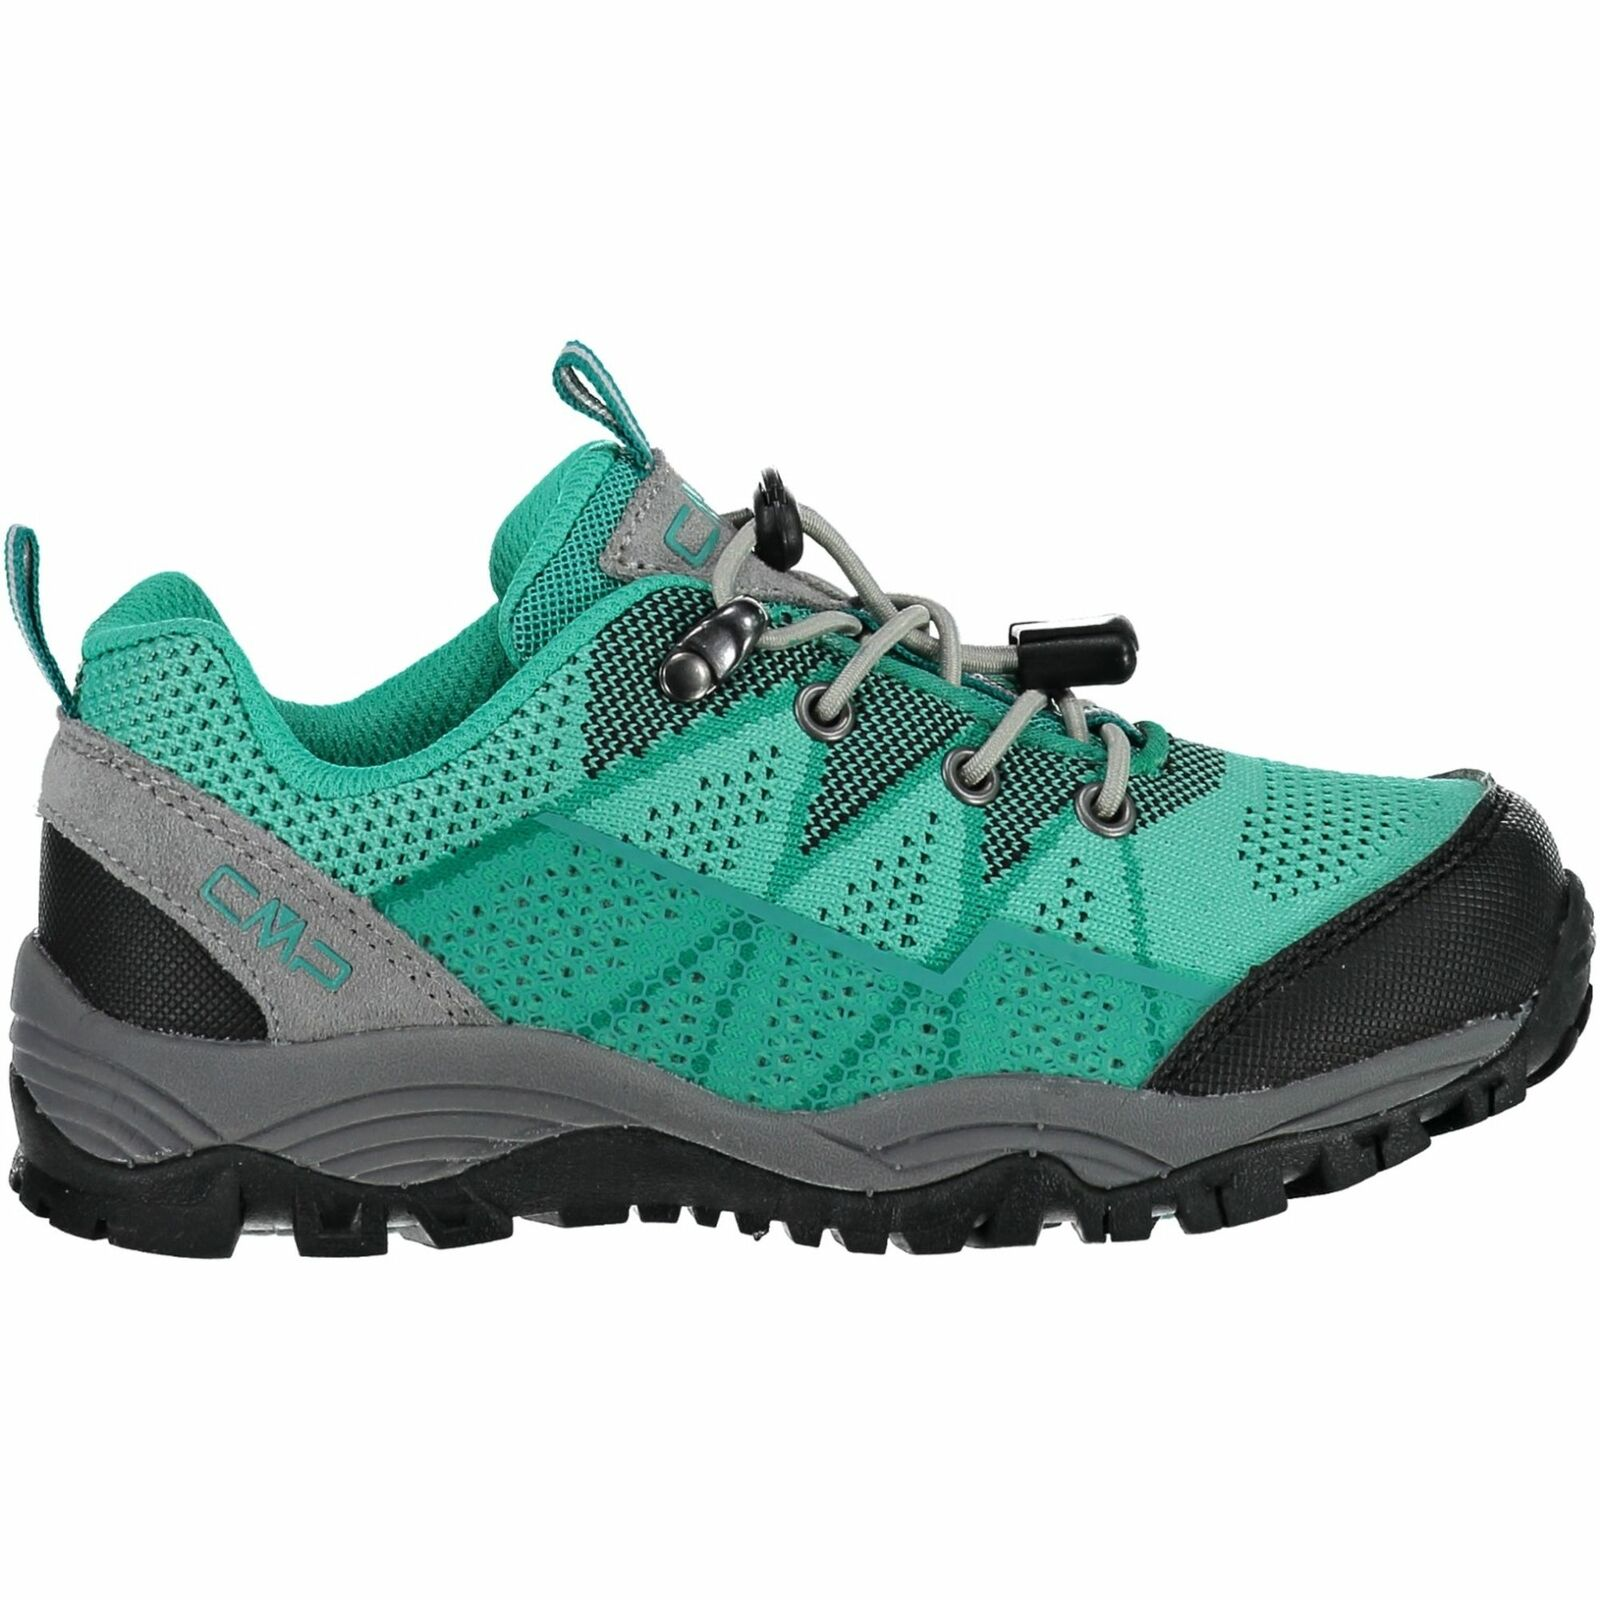 CMP Hiking shoes Leisure Kids tauri Low WP  Turquoise  fast shipping to you